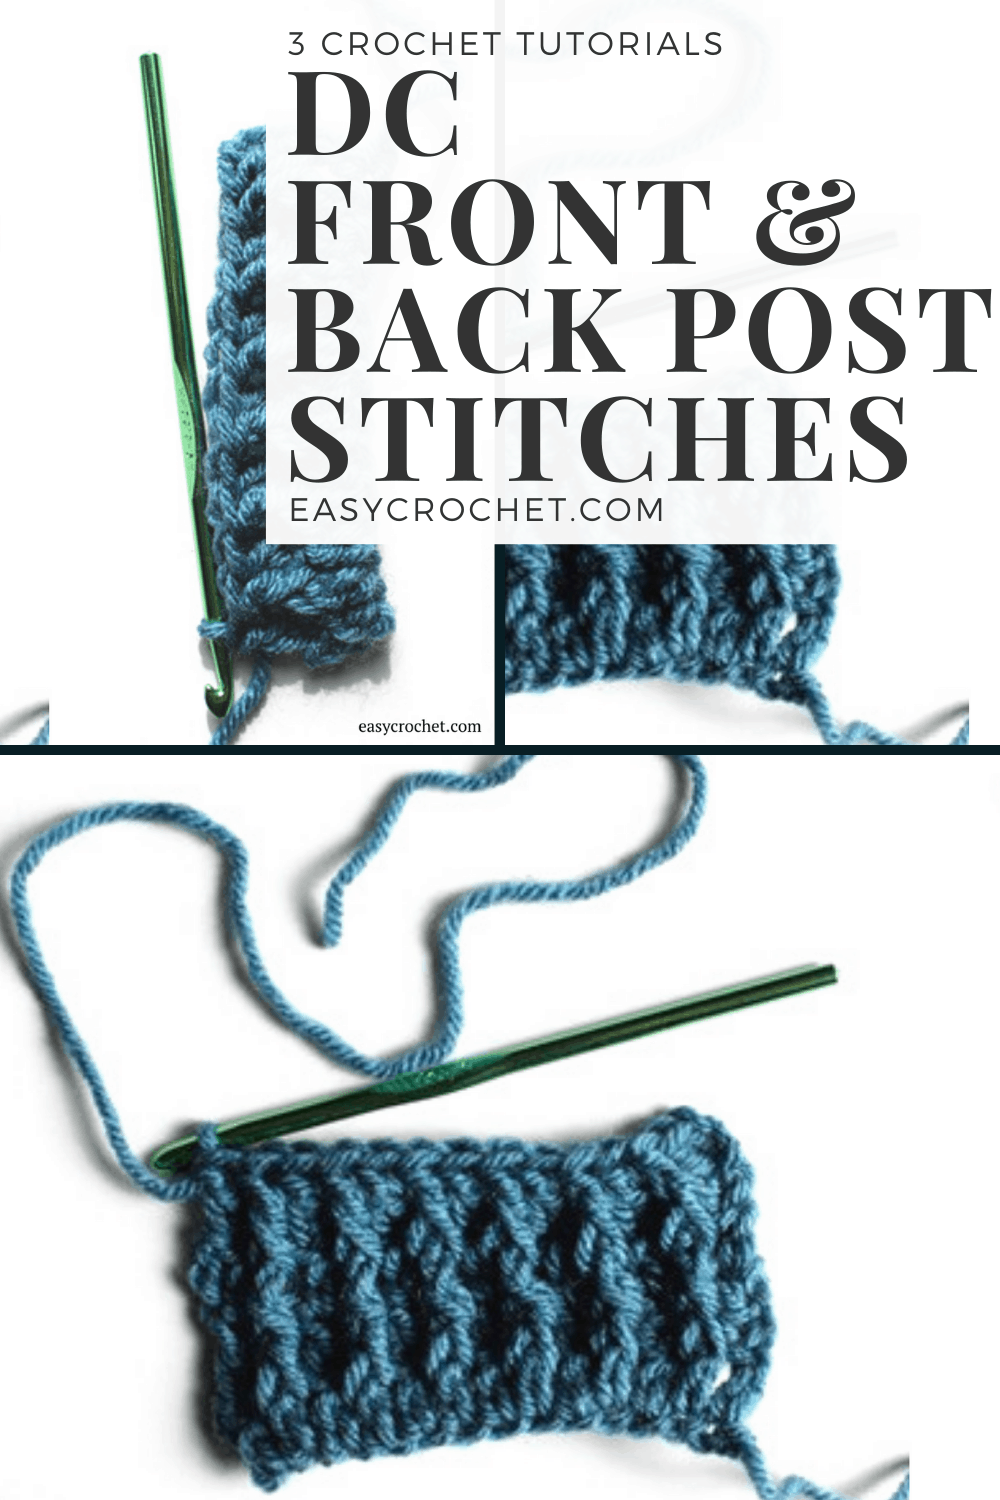 Learn about how to make double crochet front & back post stitches in crochet with this free tutorial from EasyCrochet.com via @easycrochetcom